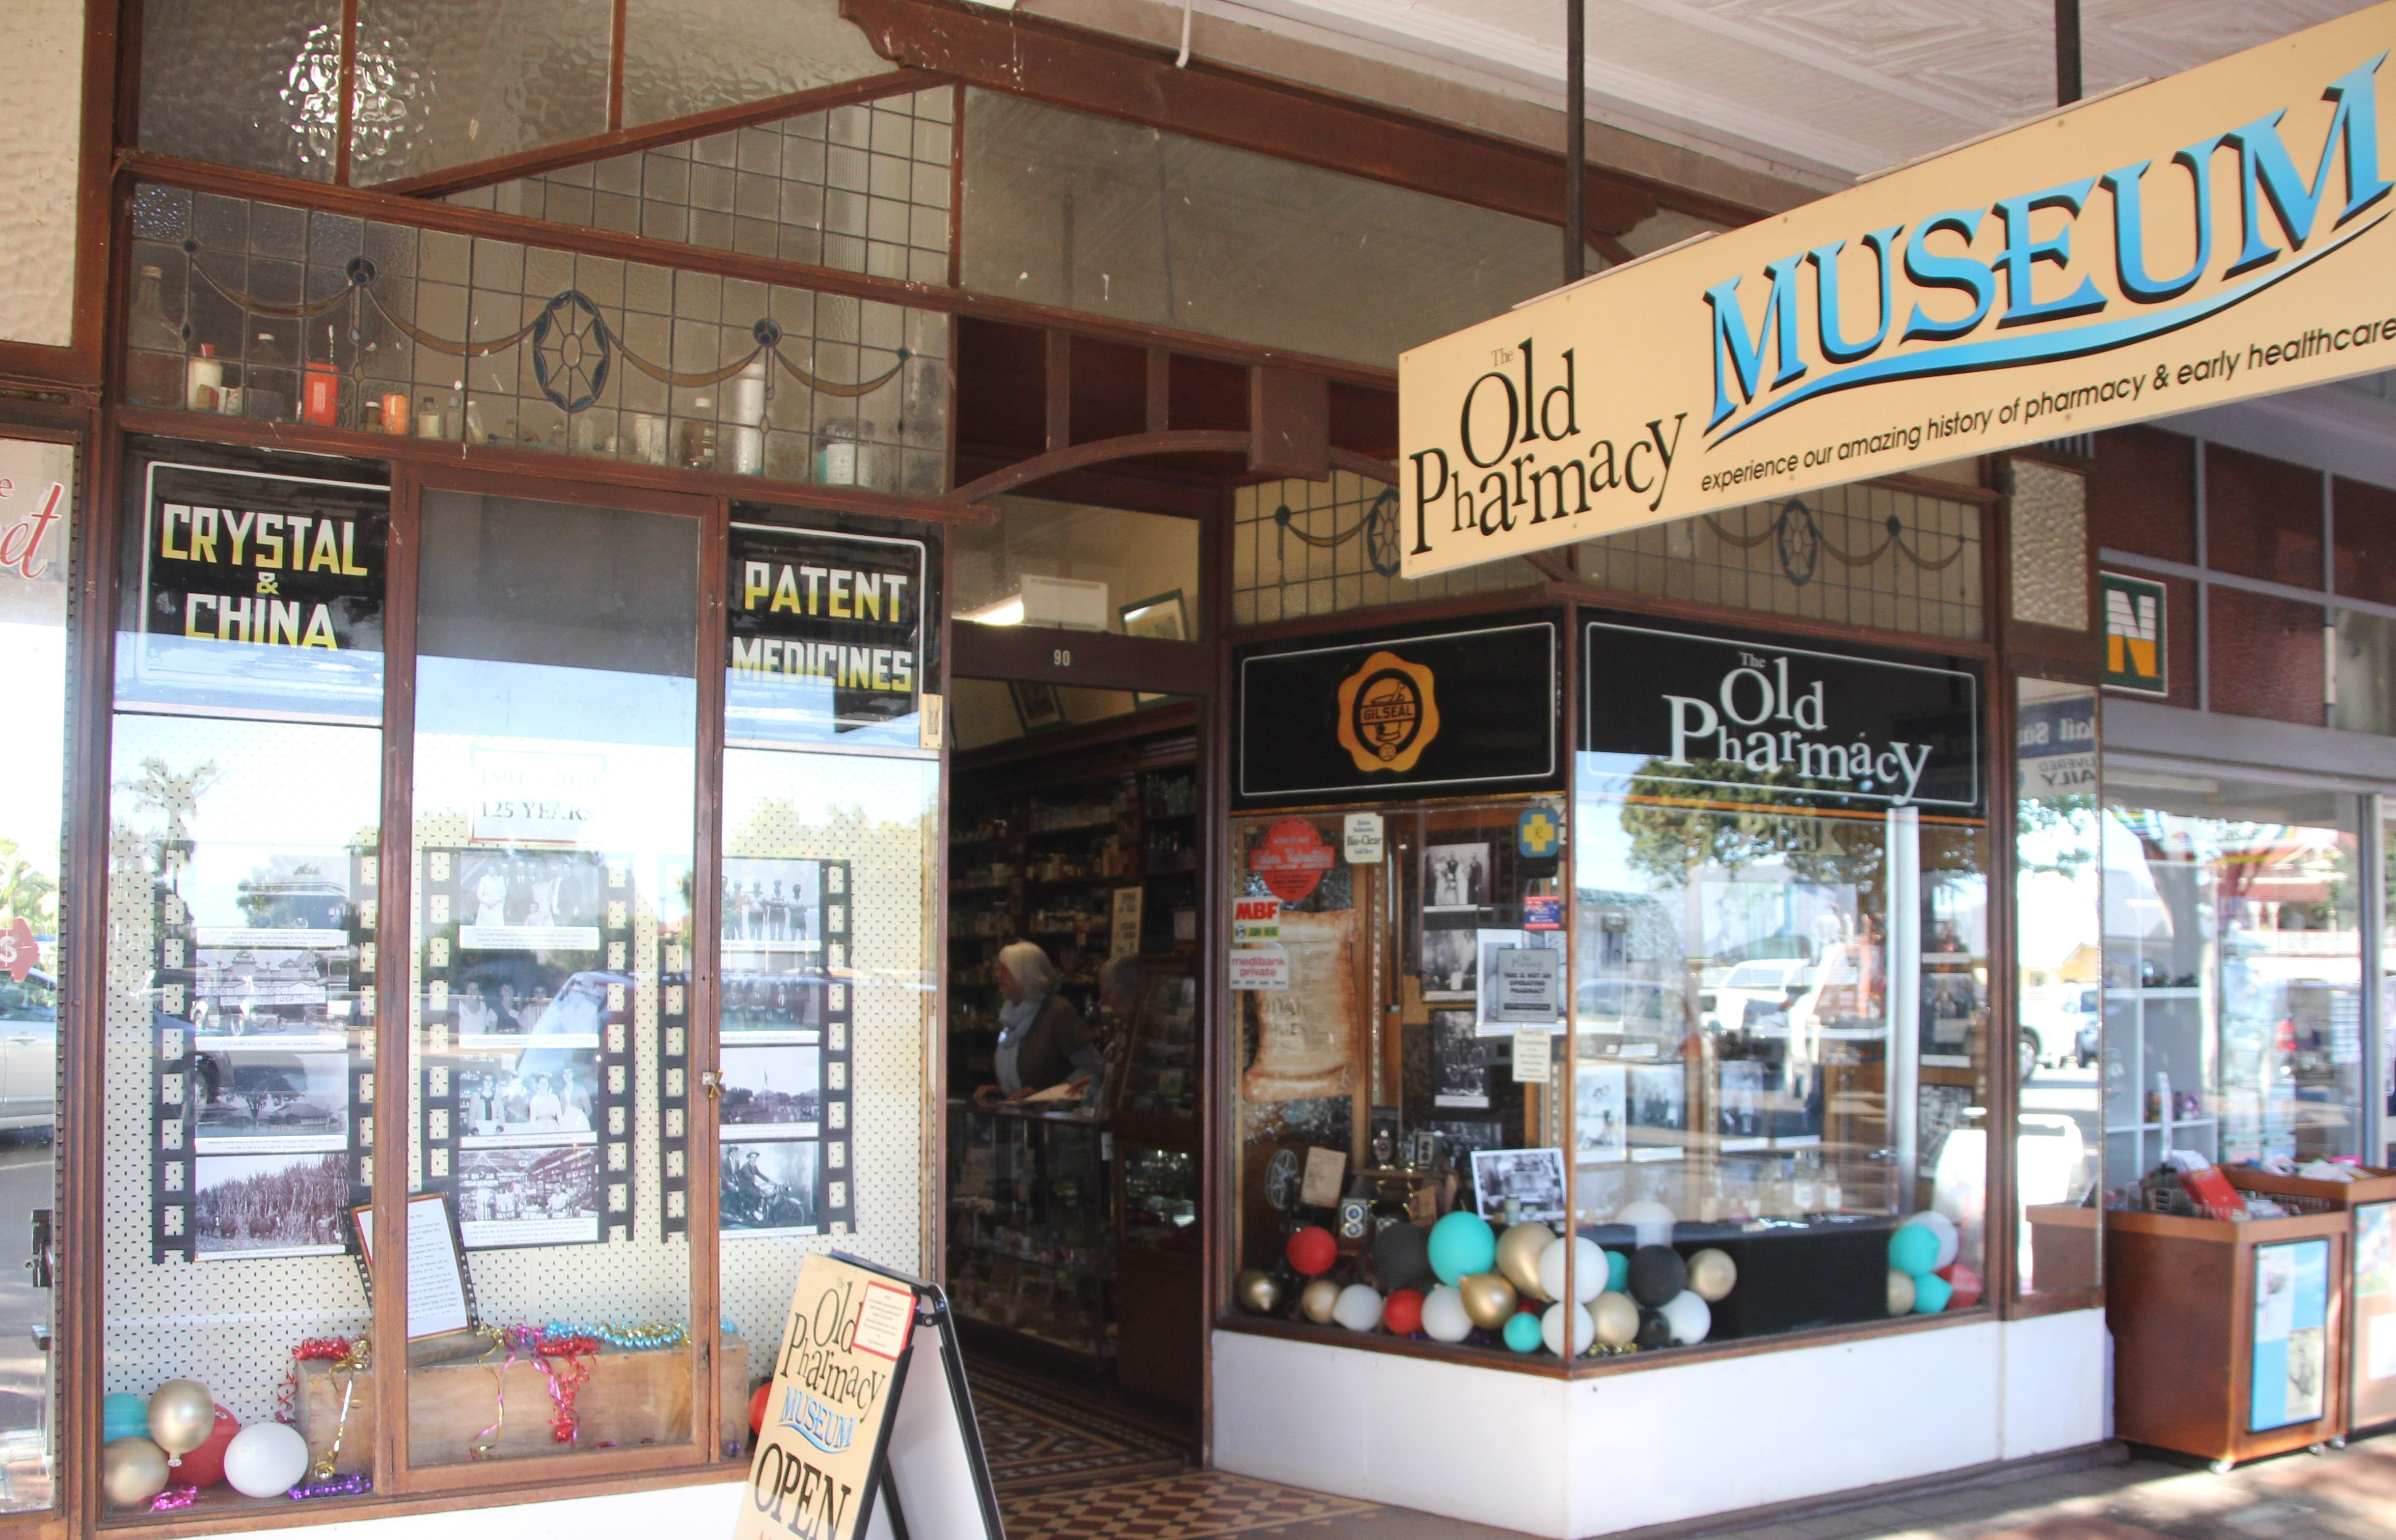 Old Pharmacy Museum  Childers - Accommodation Directory